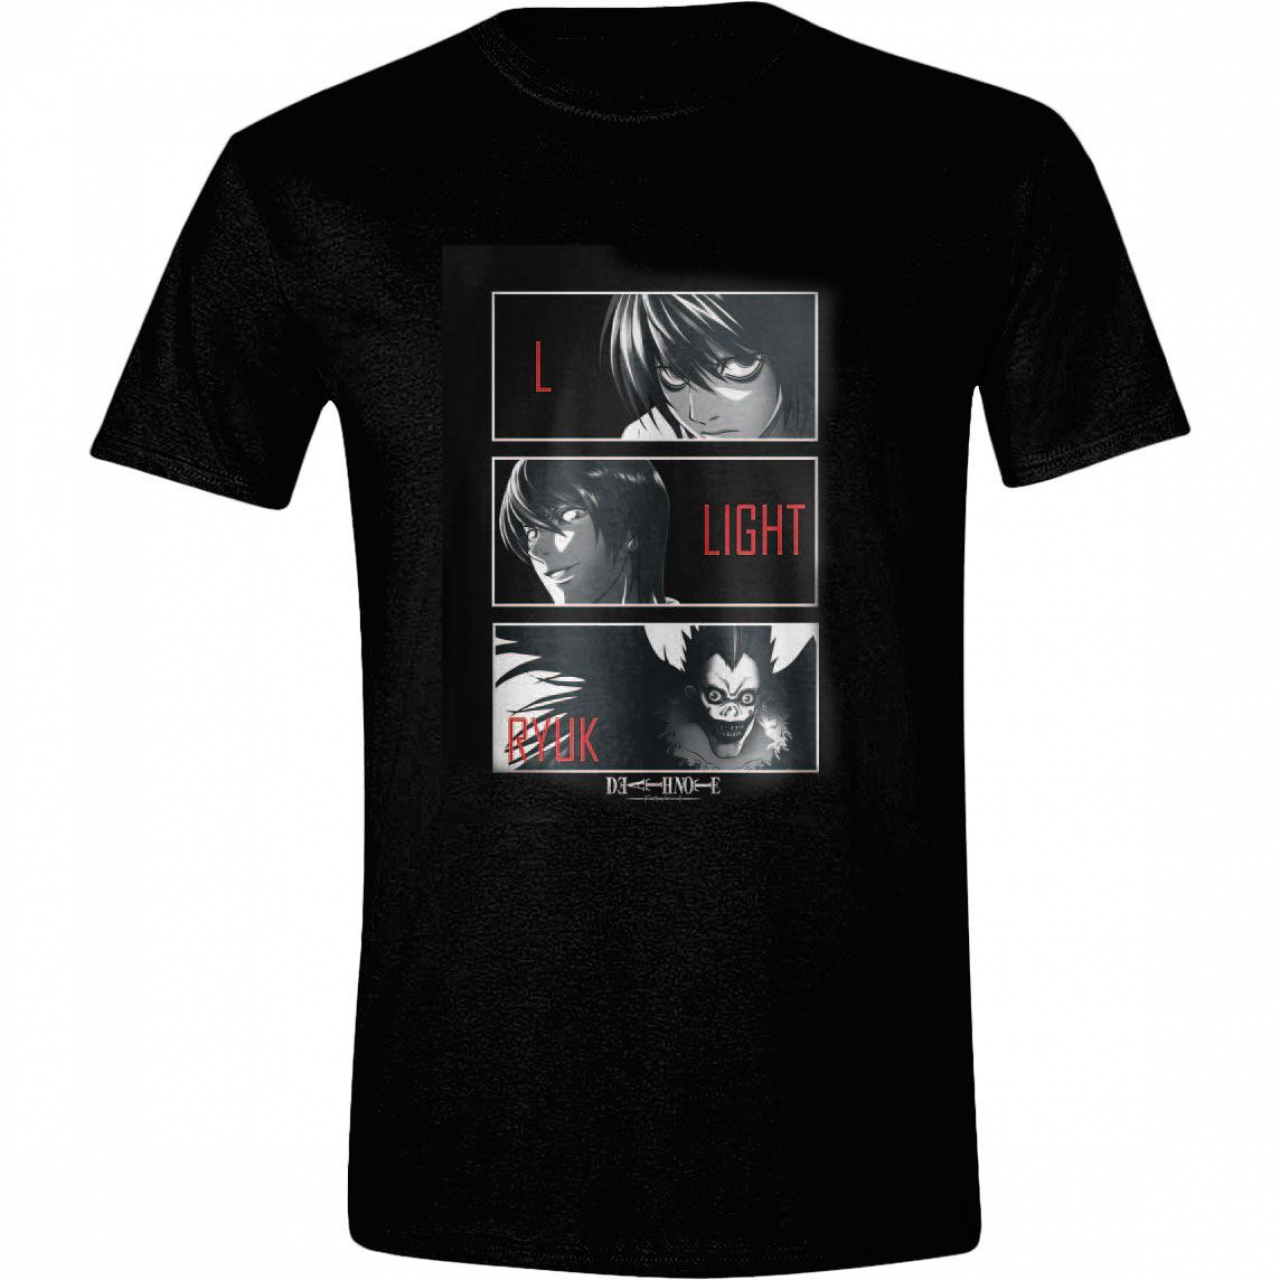 Death Note T-Shirt L, Light, Ryuk